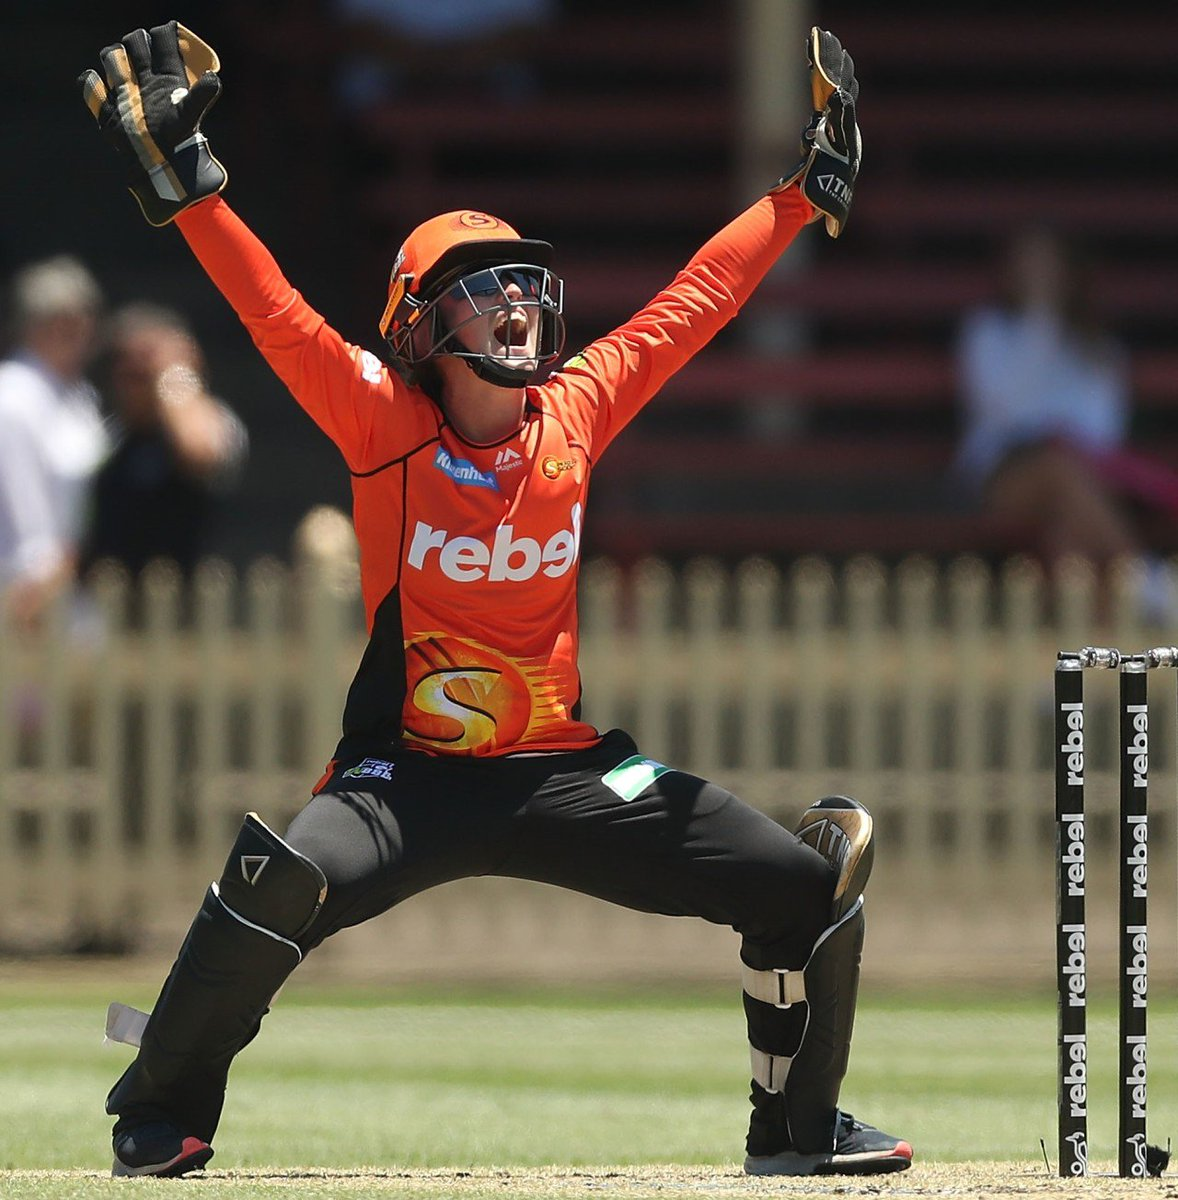 Perth Scorchers Scorchersbbl Twitter Pics Photos Diagram Of A Motherboard With Labels Ford Field Parking 0 Replies Retweets 14 Likes